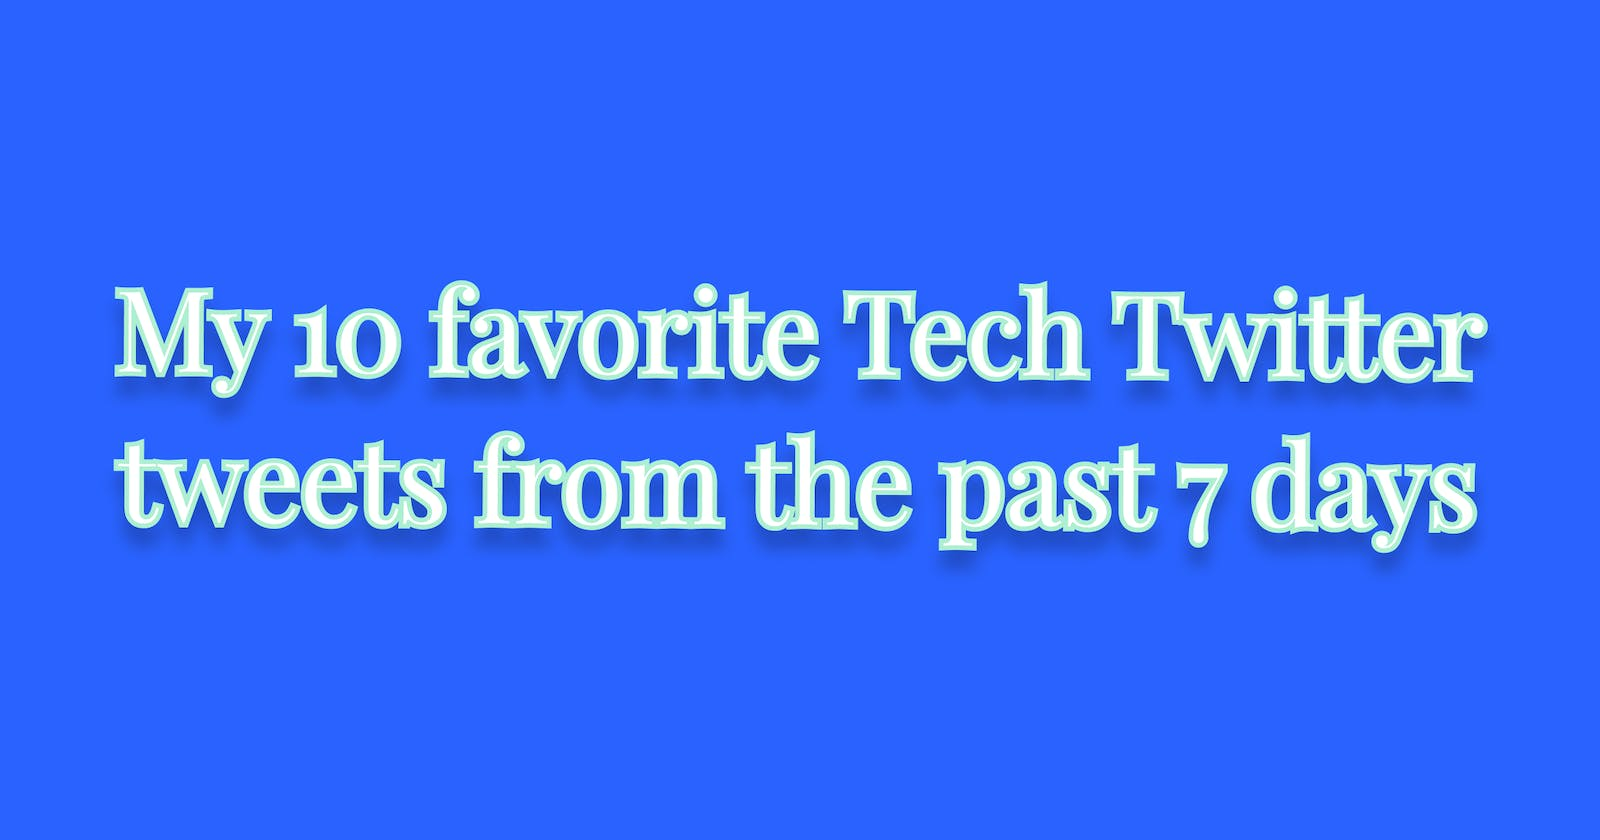 Understand JavaScript better, AWS, 8 tips to improve as a developer, and more  My 10 favorite Tech Twitter tweets from the past 7 days: